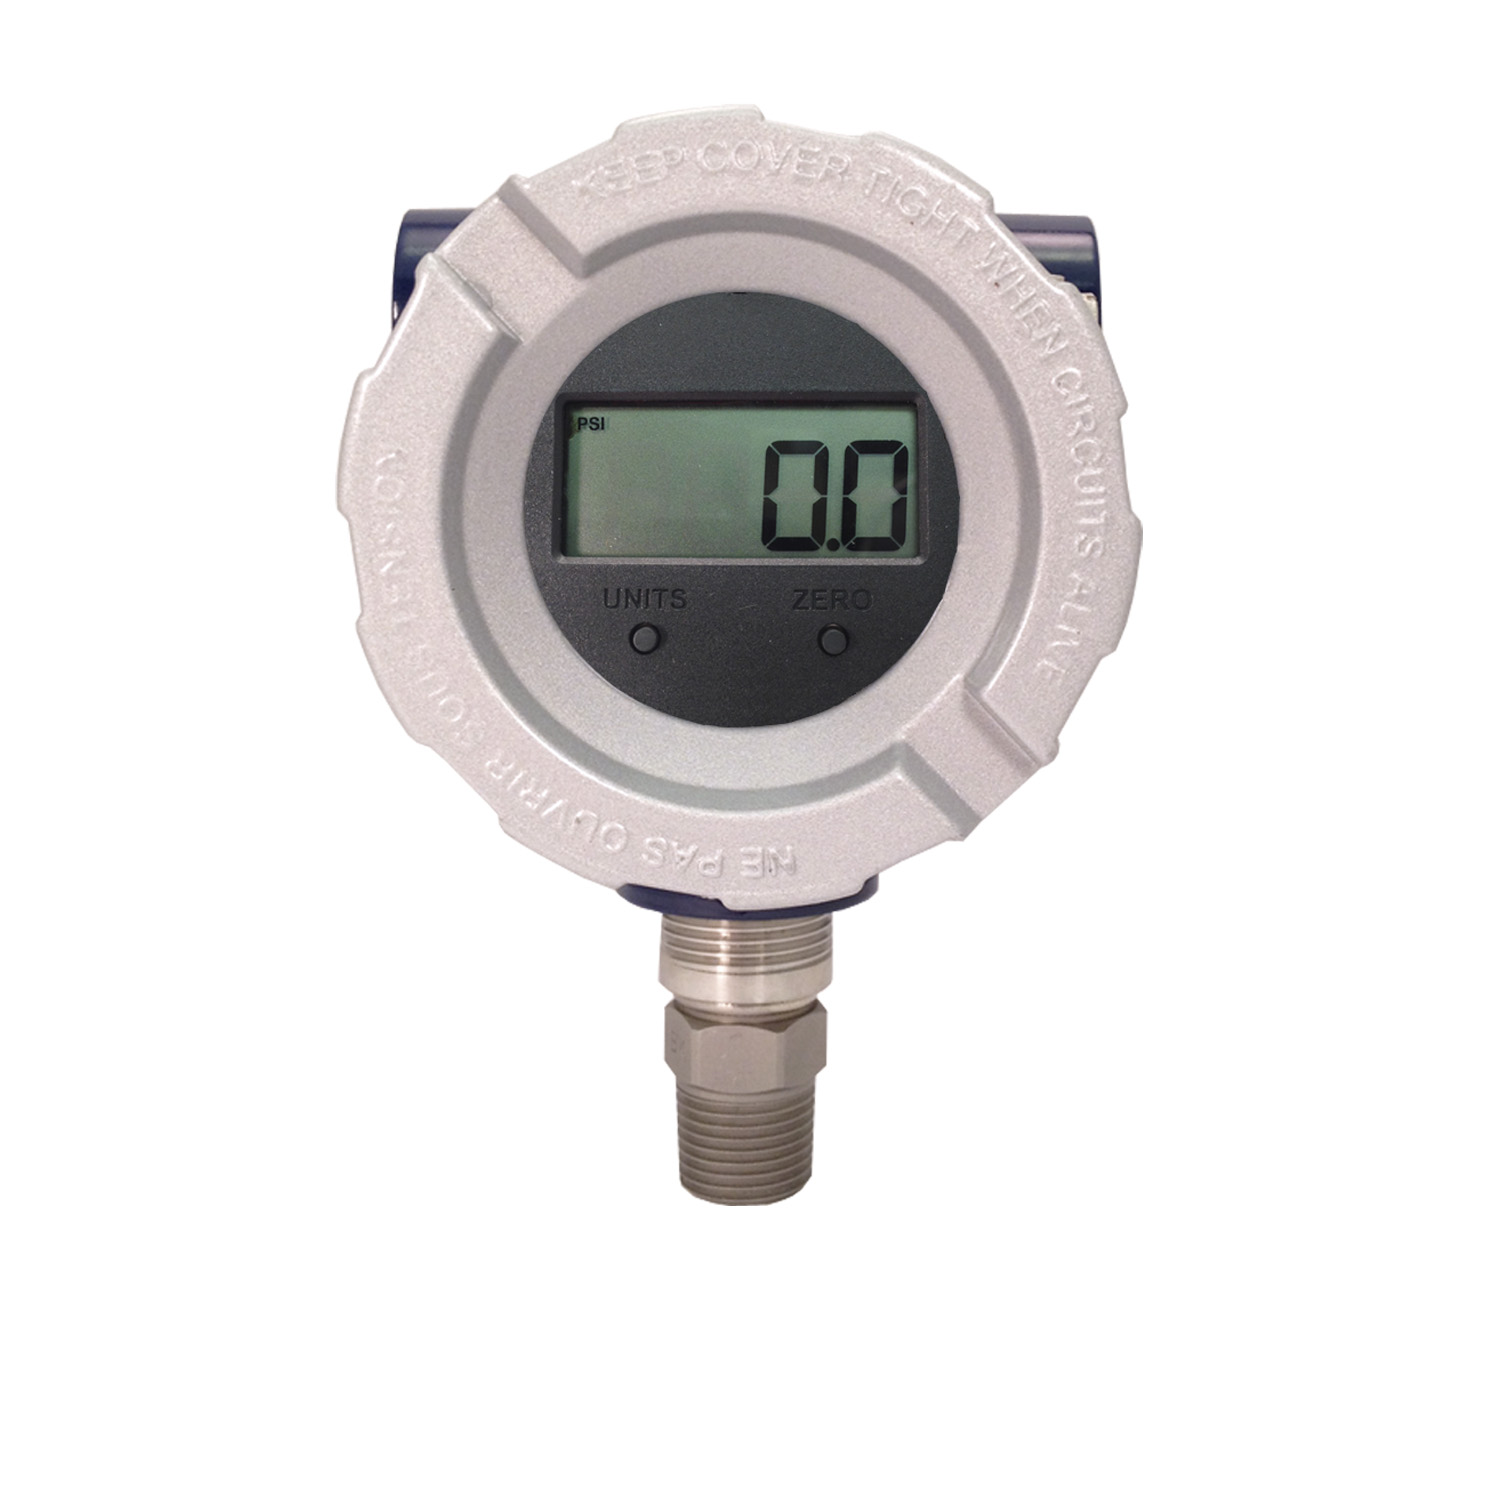 AST46DS explosion proof pressure transmitter